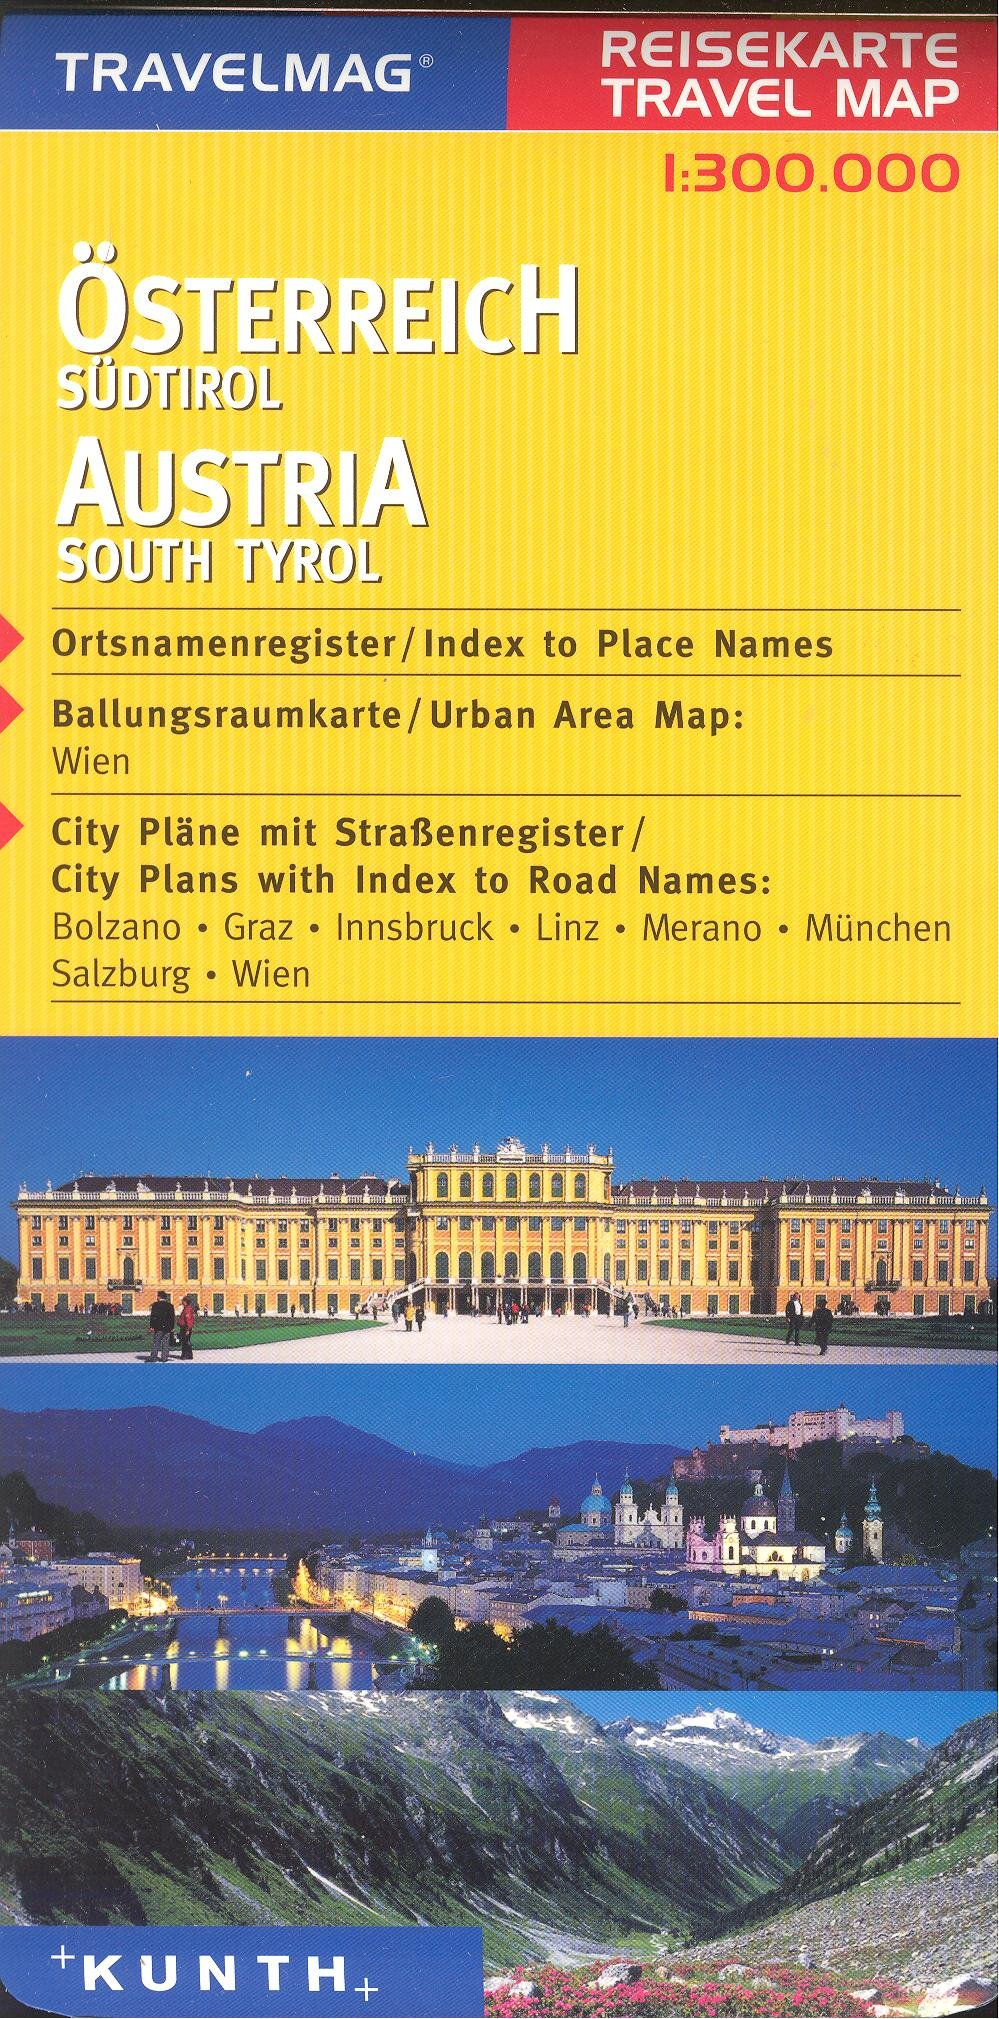 Austria & Northern Italy 1:300,000 Touring Map with city plans, KUNTH